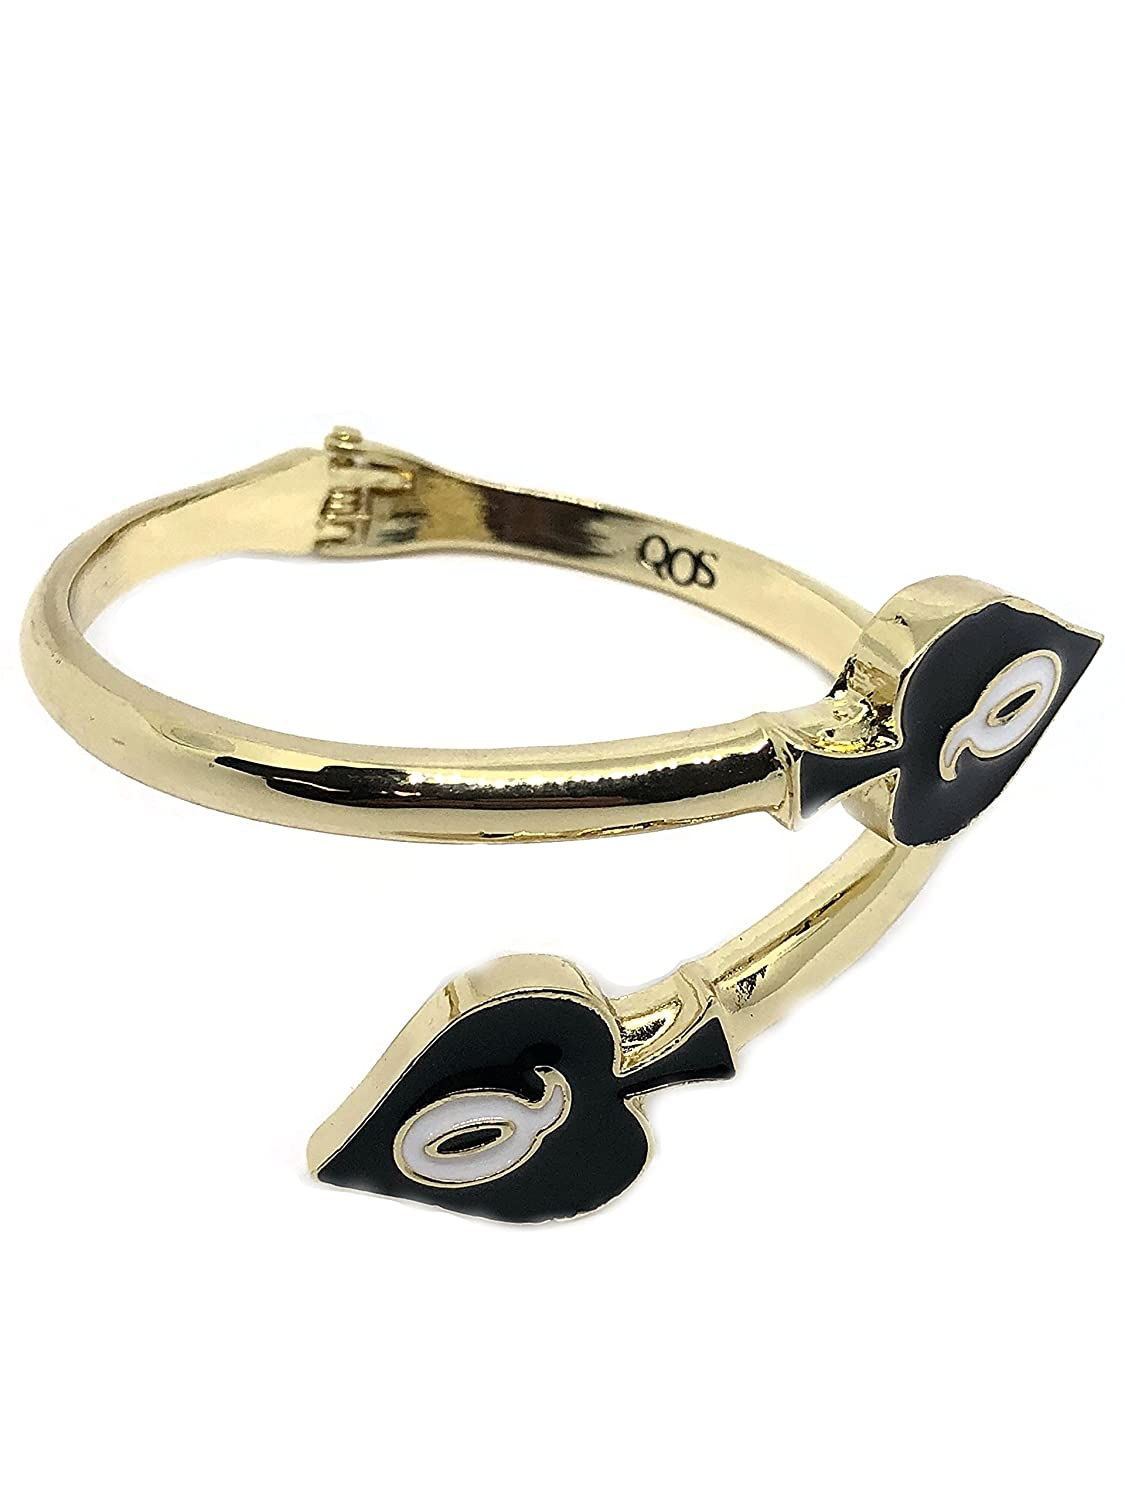 Alternative Intentions QOS (Queen of Spades) Charm Open Hinged Cuff Snake Bracelet QOSBRCT01